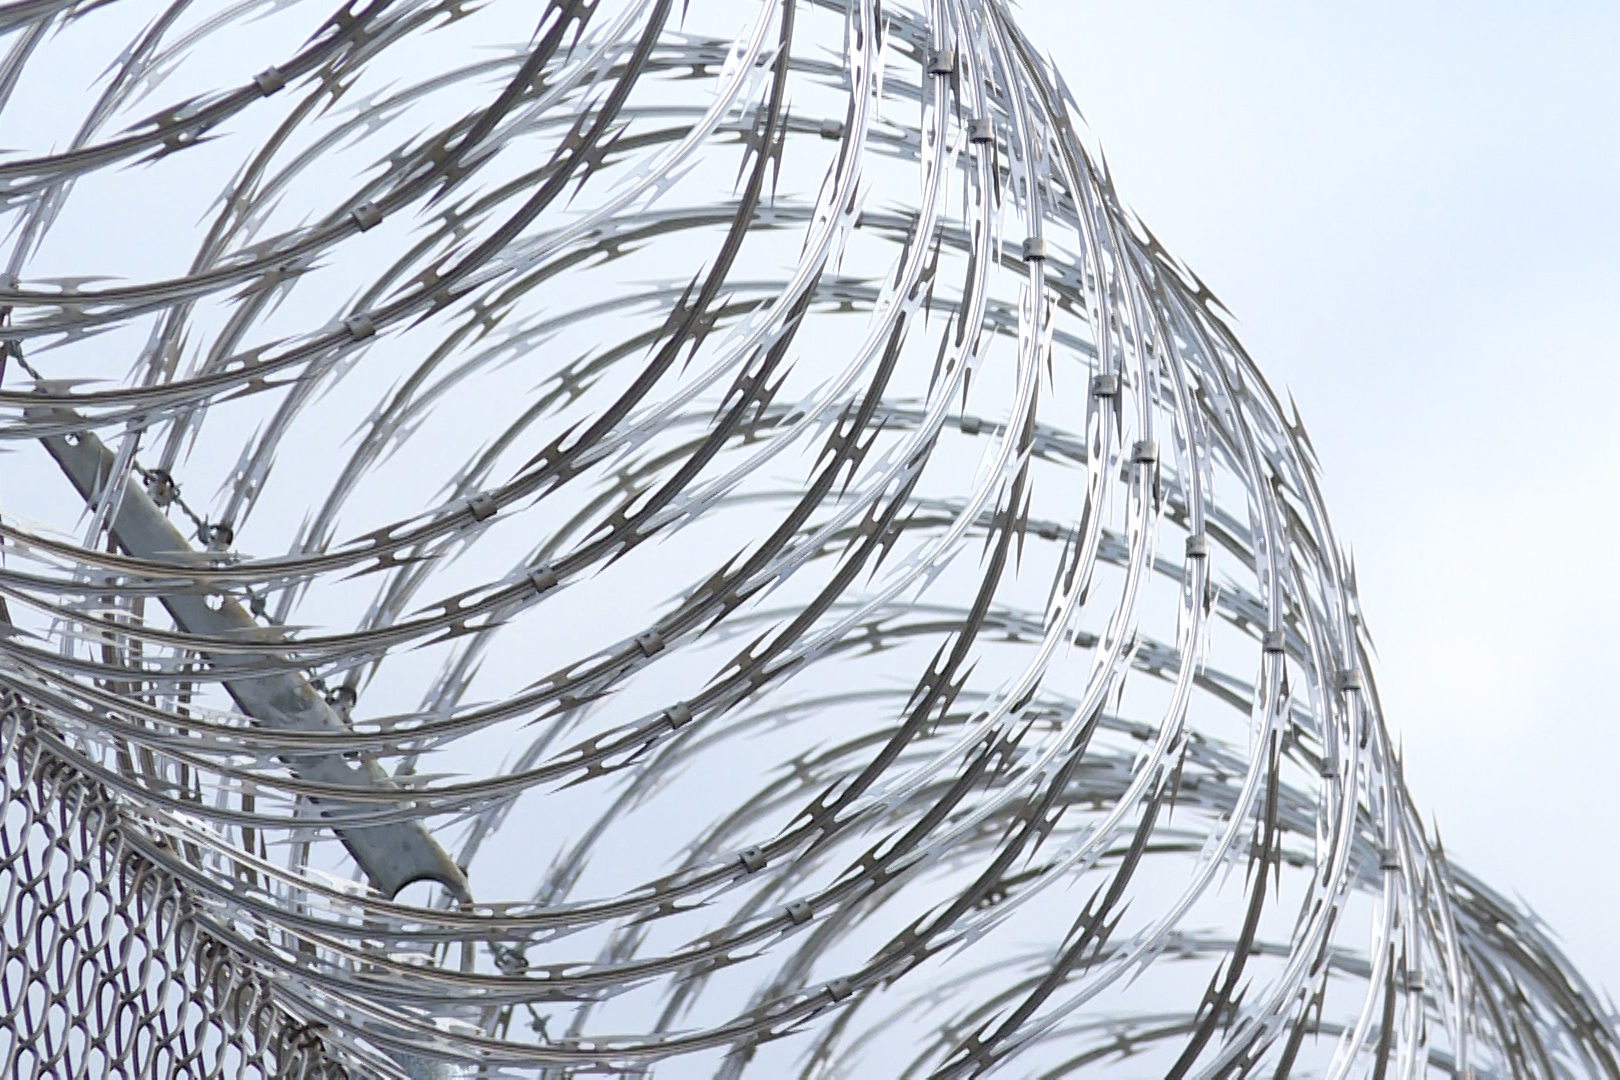 Generic barbed wire outside a prison.